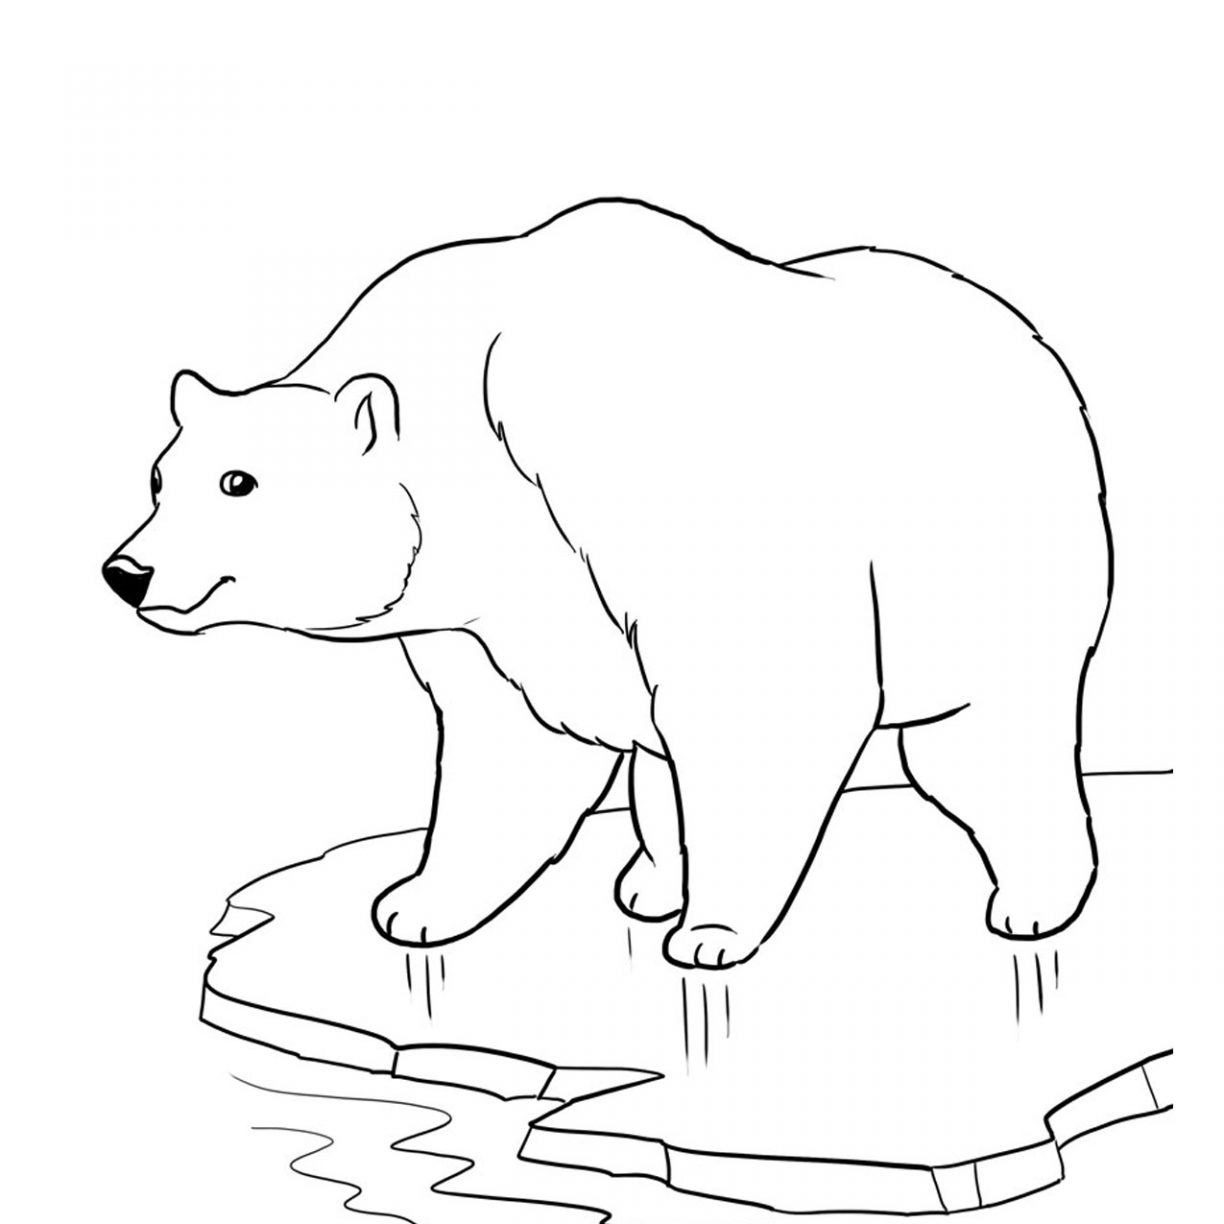 1224x1224 Polarar Printable Coloring Pages Baby Sheets Animalst Best Polar